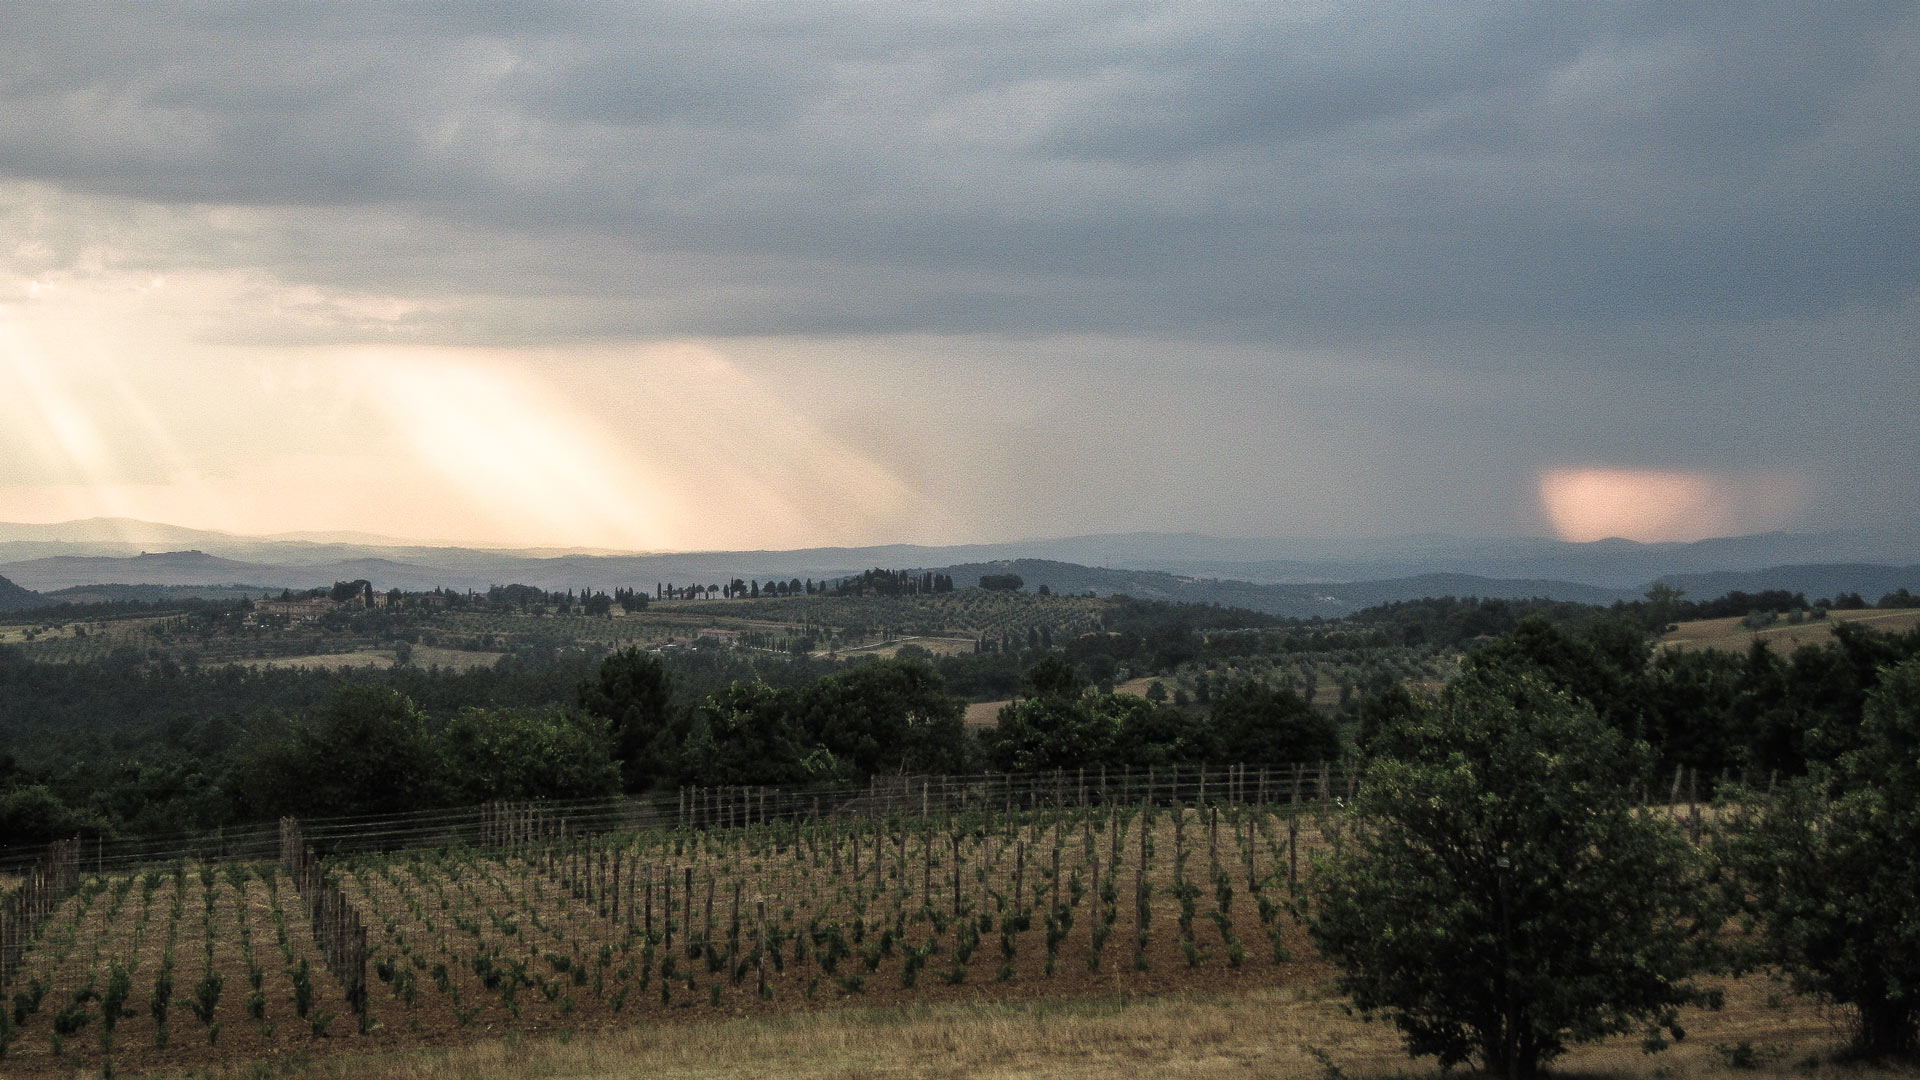 Copy of Winter sunset over our vineyards